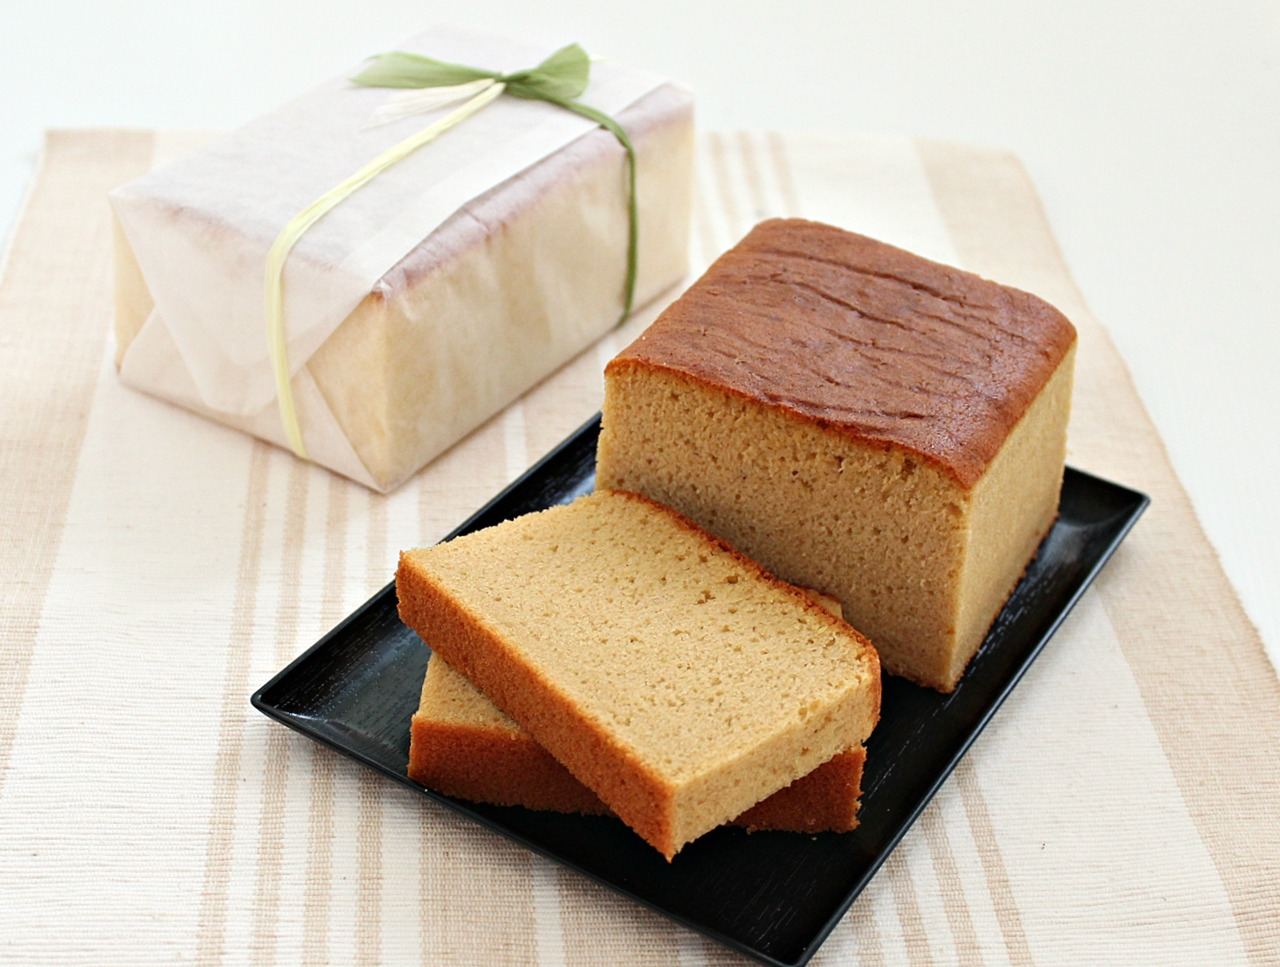 Japanese Microwave Cake Recipe: Recipes, Cooking Tips, And Food News